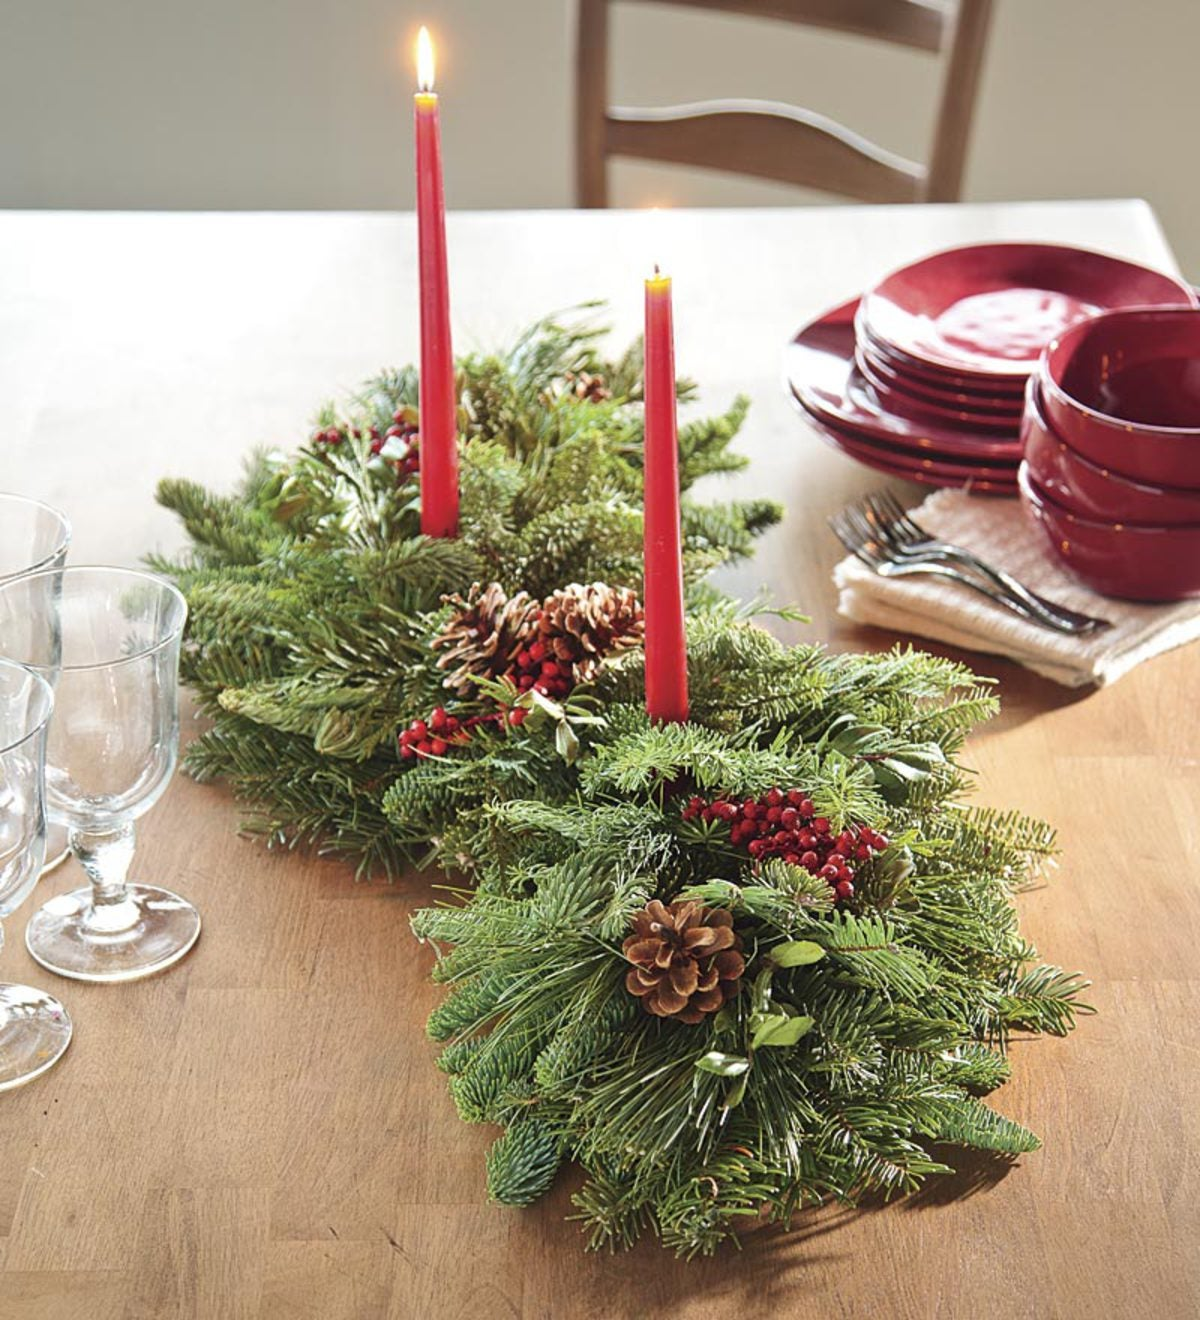 Holiday Woodland Evergreens Centerpiece With Two Candles